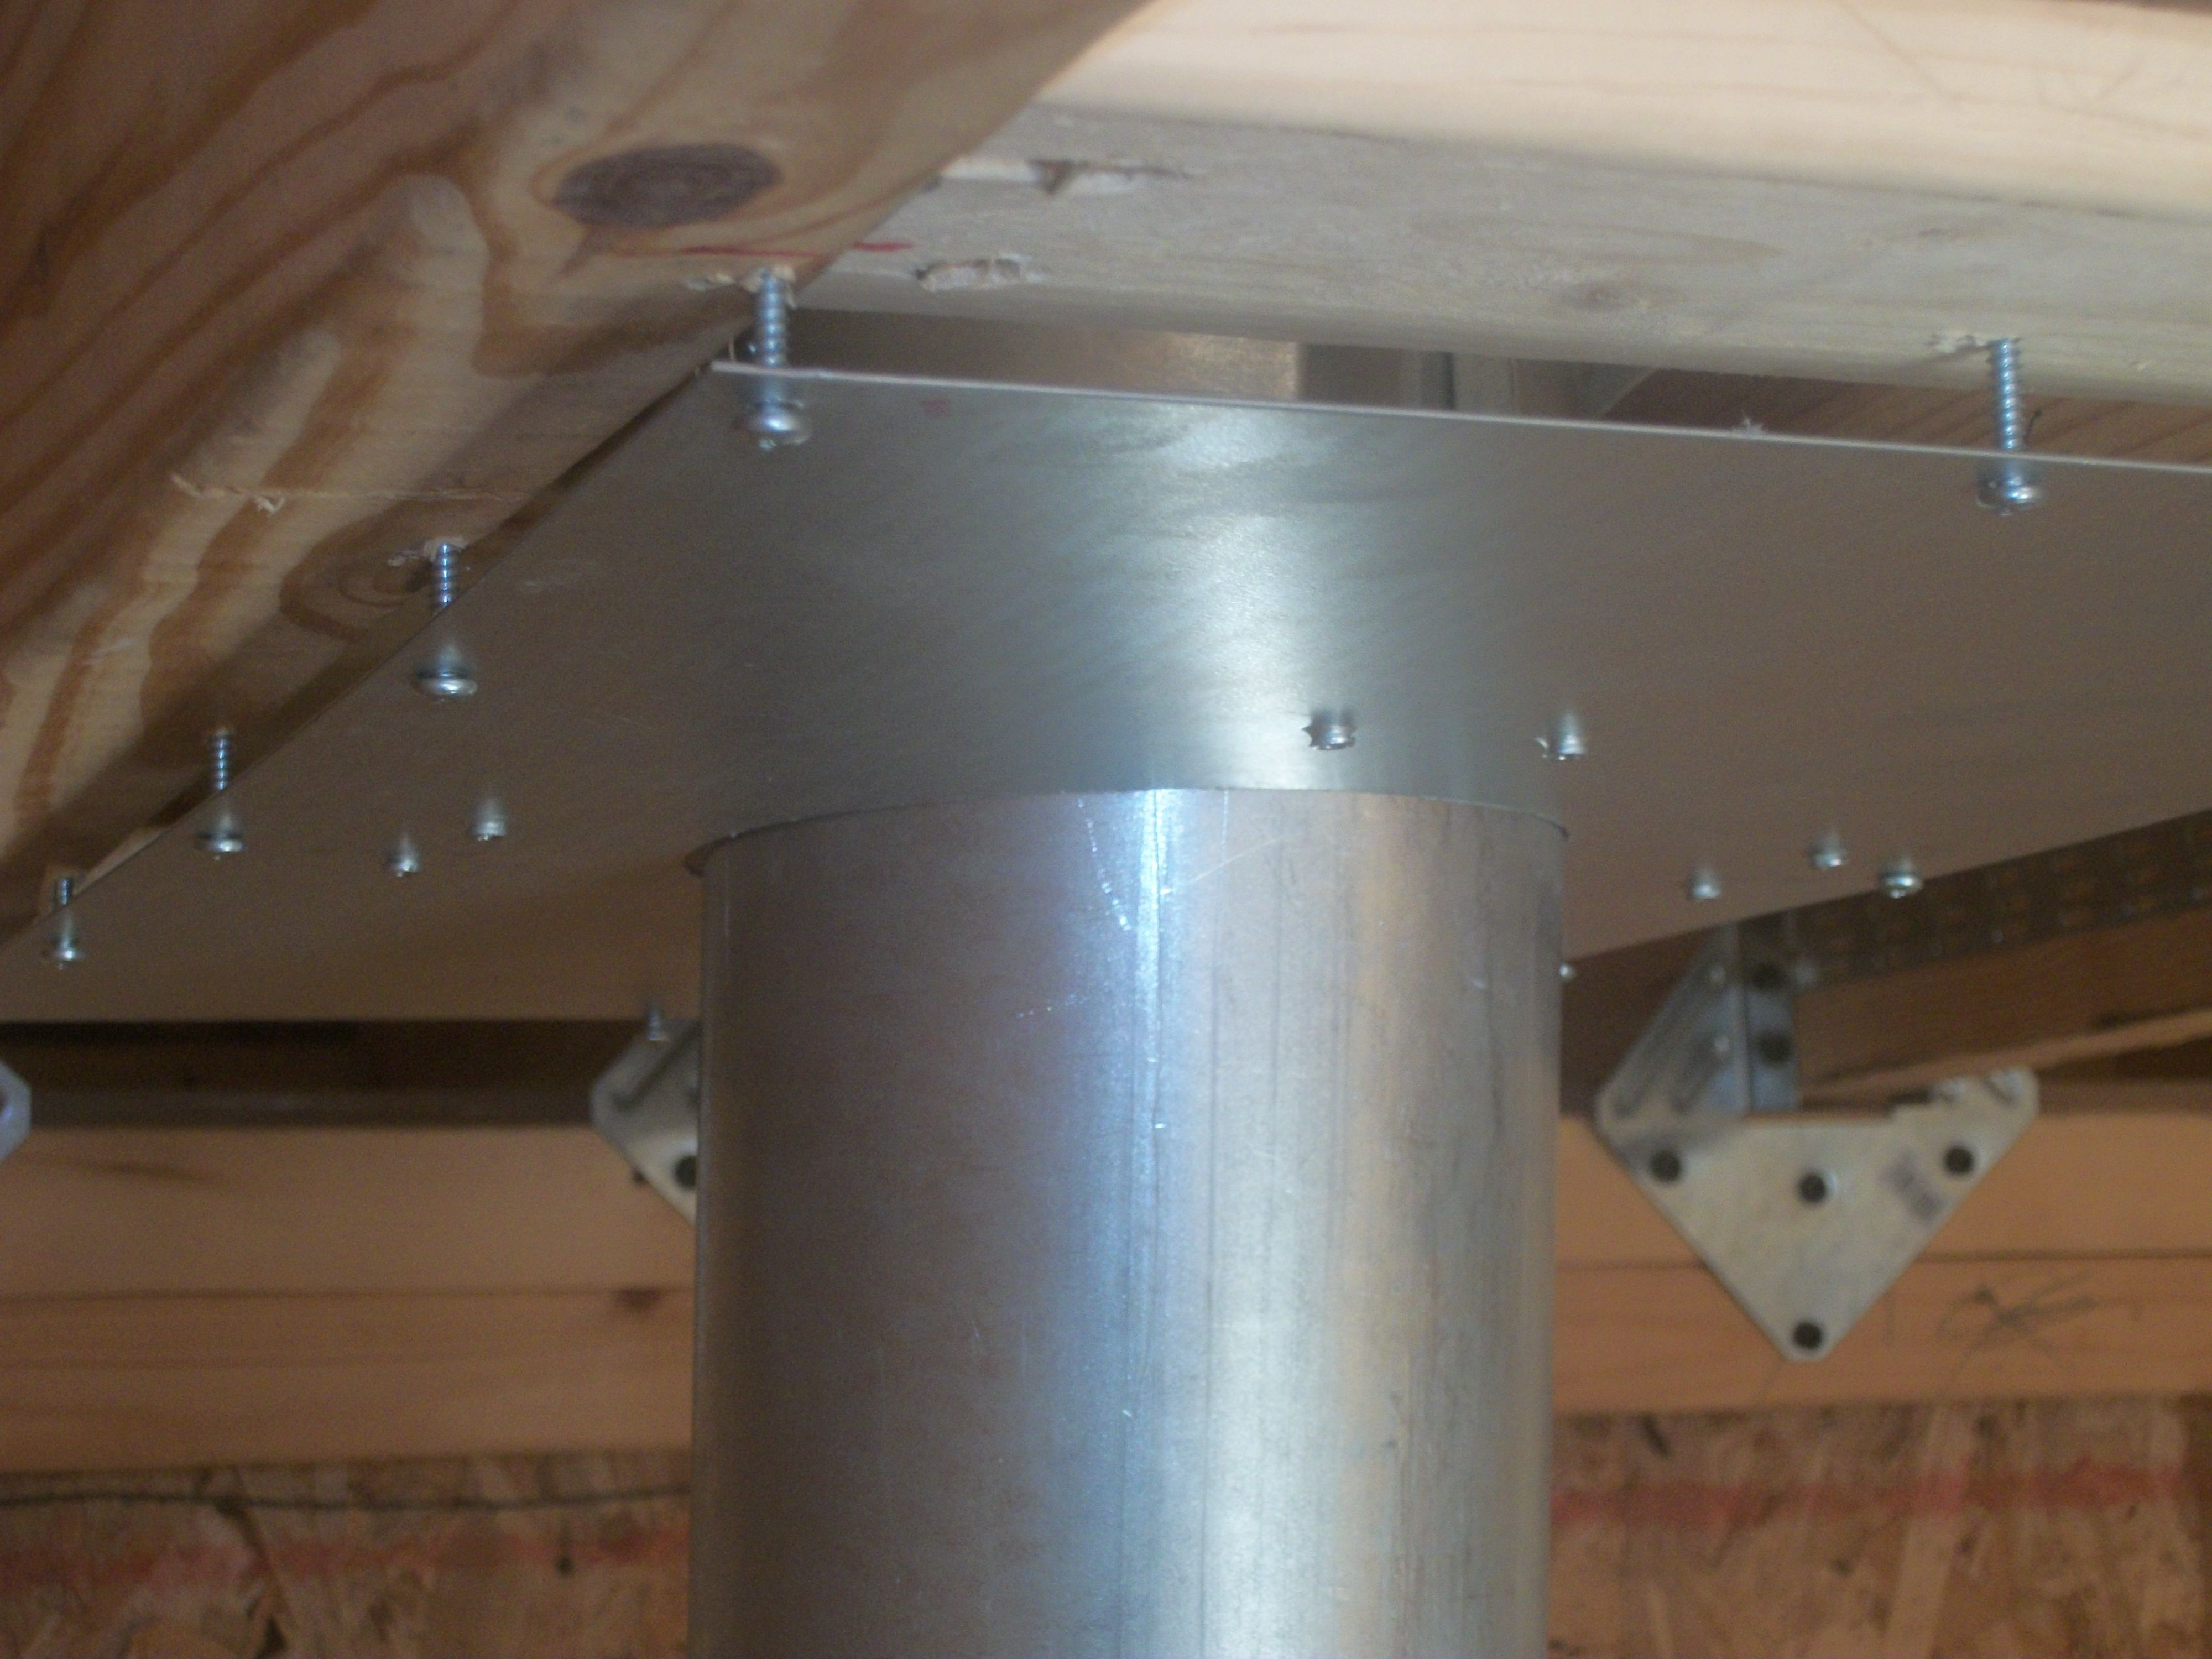 B venting a hot water heater - B Venting A Hot Water Heater 25